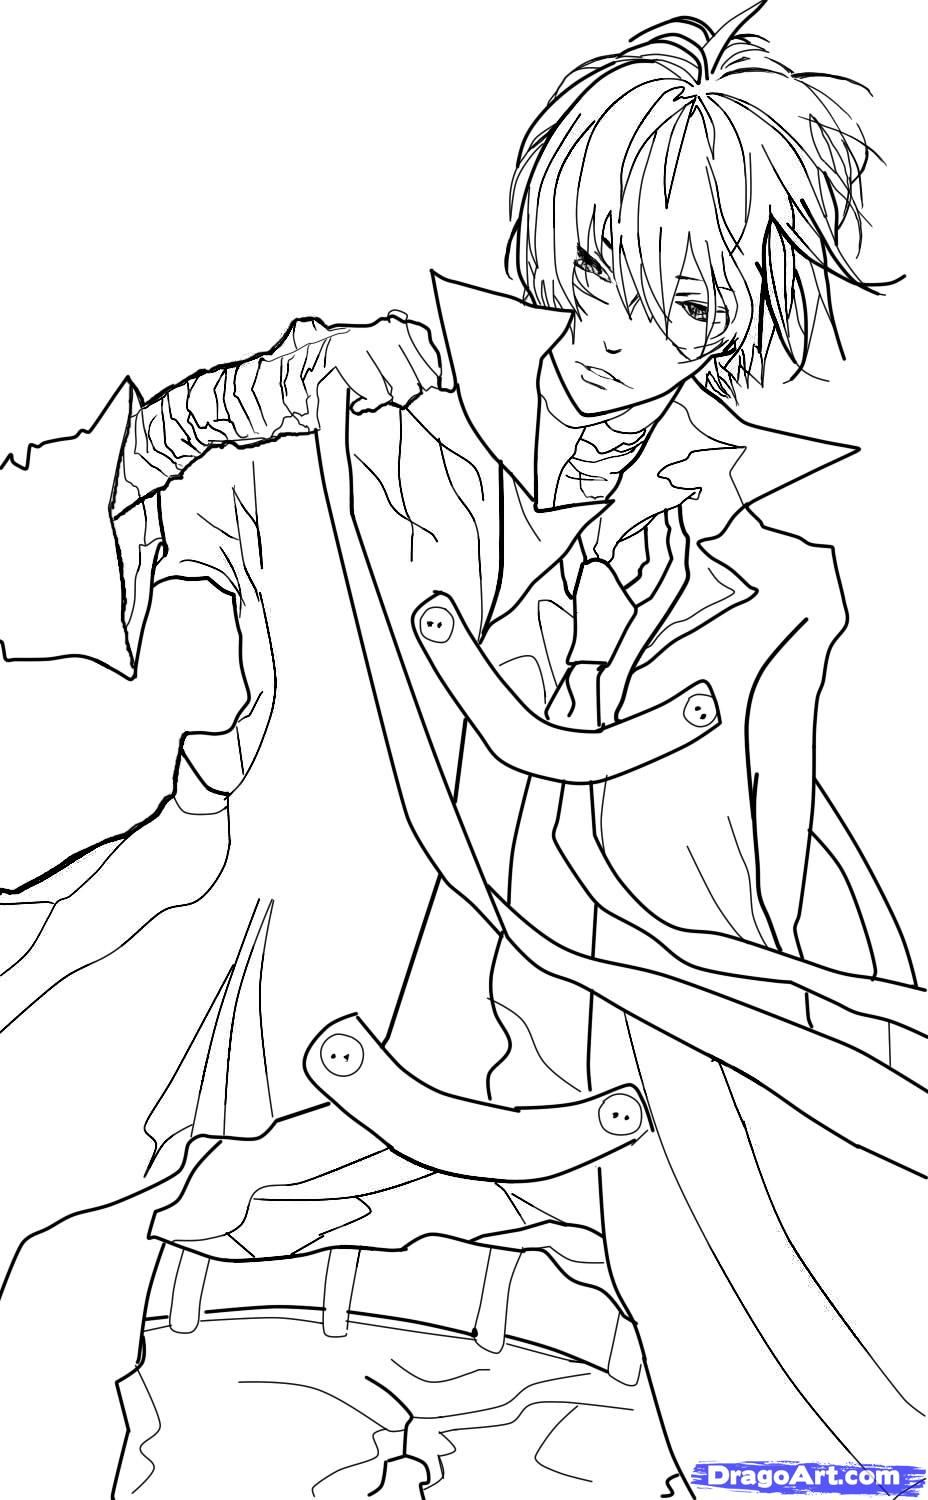 How To Sketch An Anime Boy Step By Step Anime People Anime Draw Japanese Anime Dra Chibi Coloring Pages Disney Princess Coloring Pages Manga Coloring Book